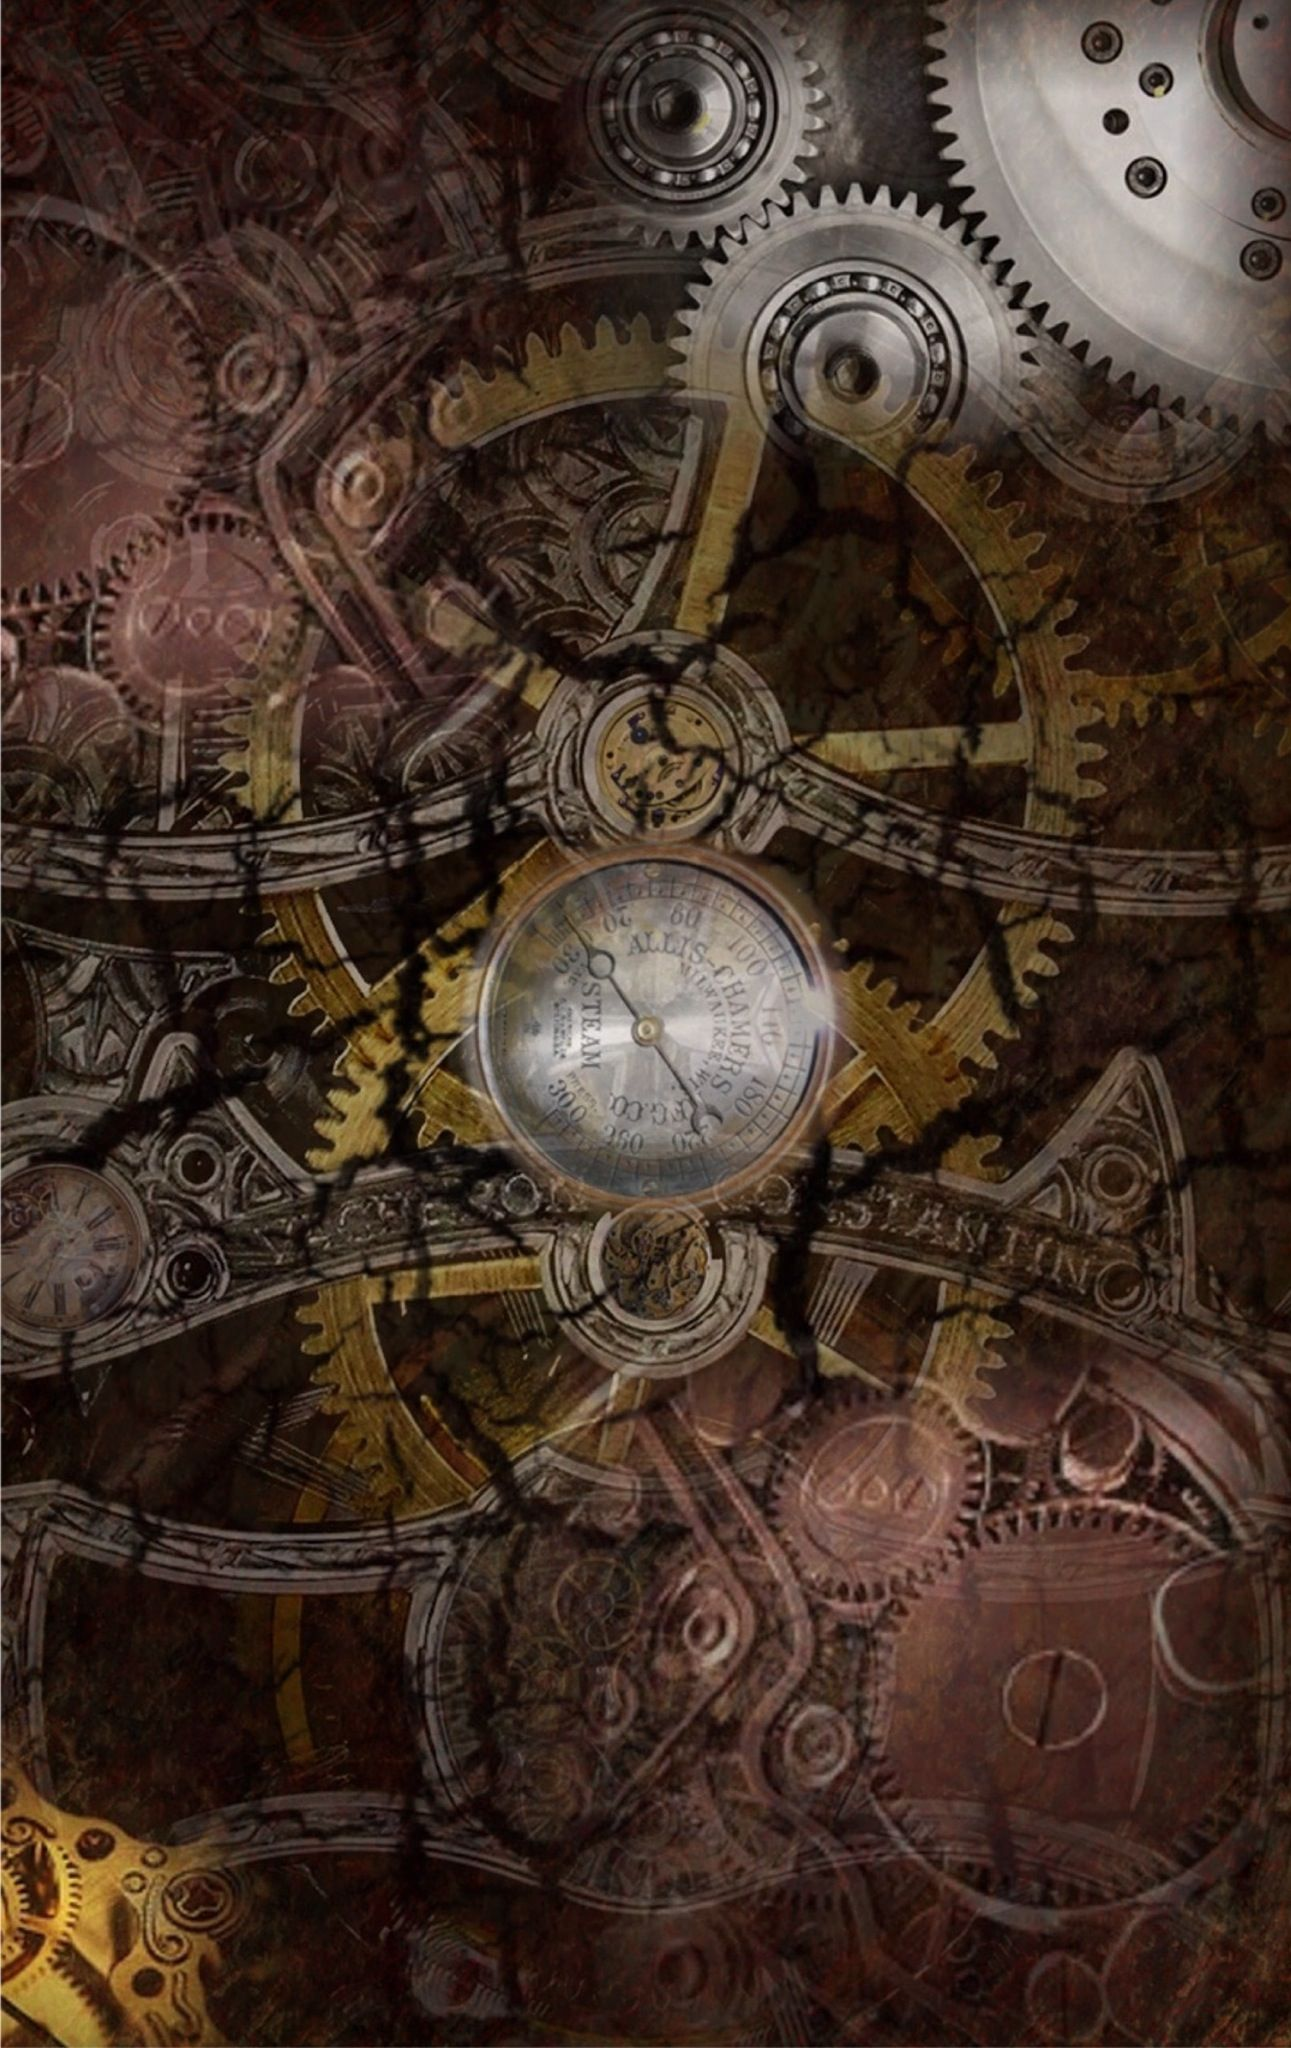 Steampunk Ideas View Source Image Steampunk Ideas Pinterest